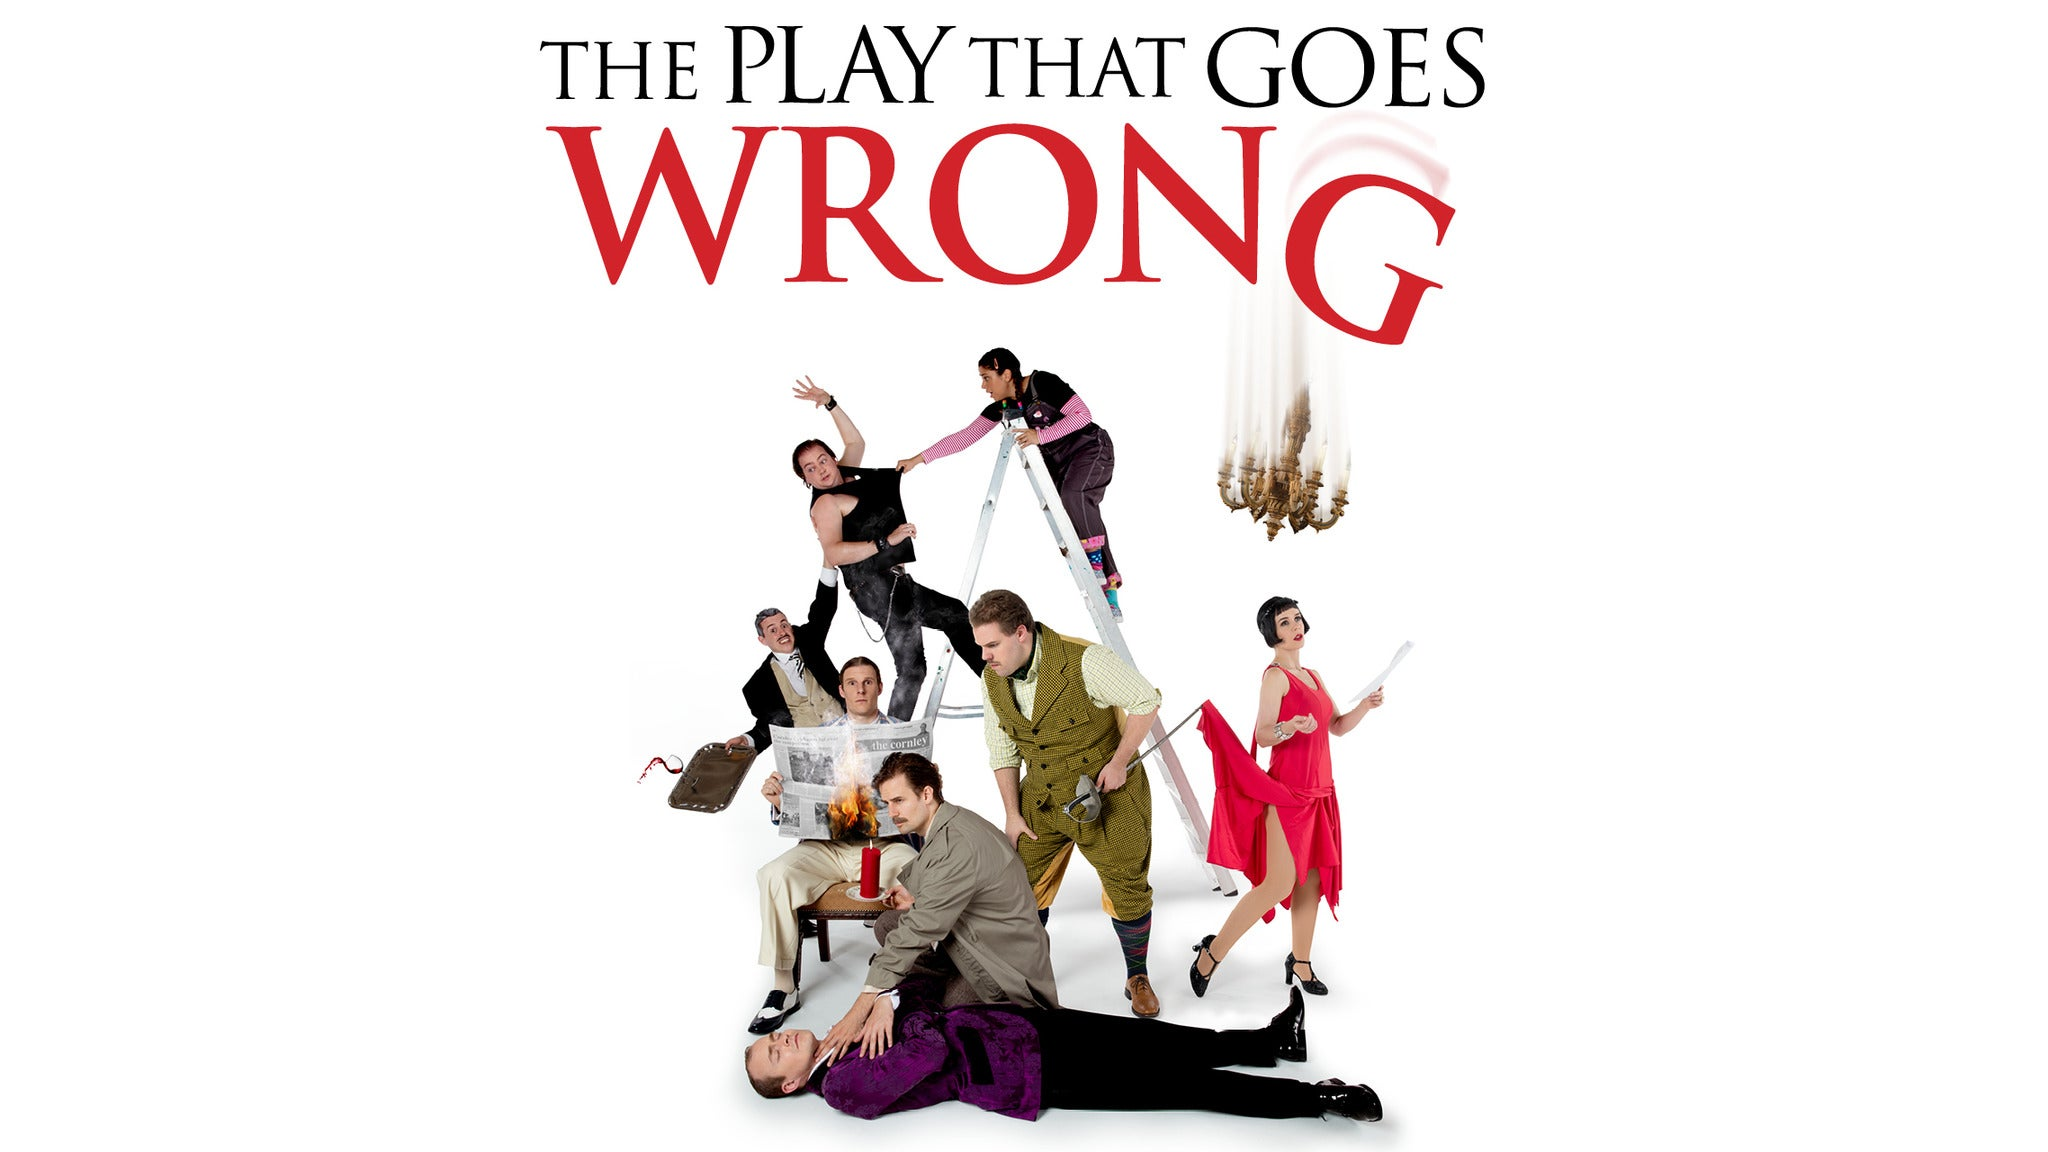 The Play That Goes Wrong at The Playhouse on Rodney Square - Wilmington, DE 19801